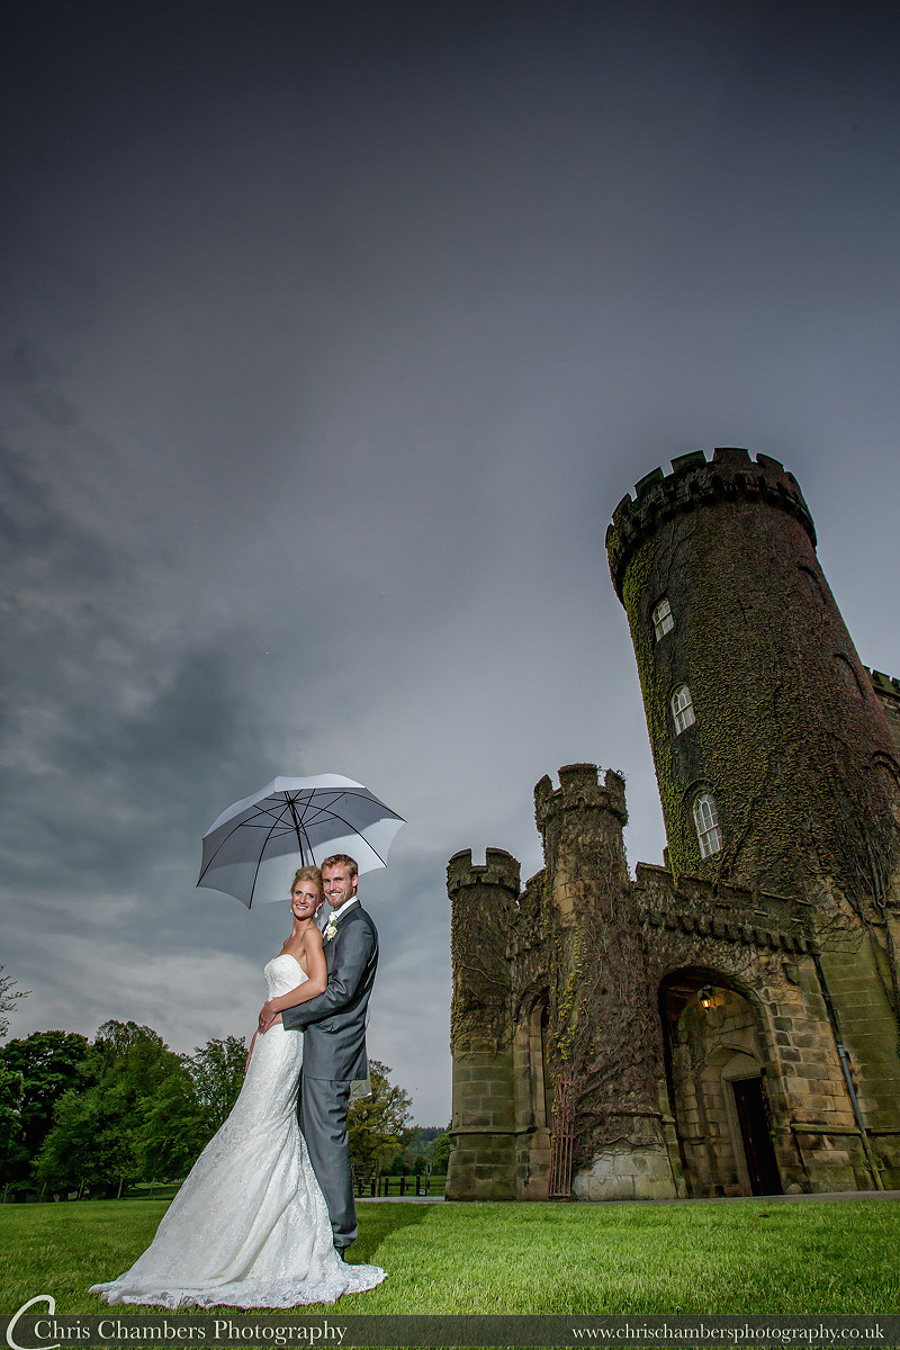 Swinton Park Wedding photographs | Award winning Yorkshire wedding photography | Swinton Park wedding photographer